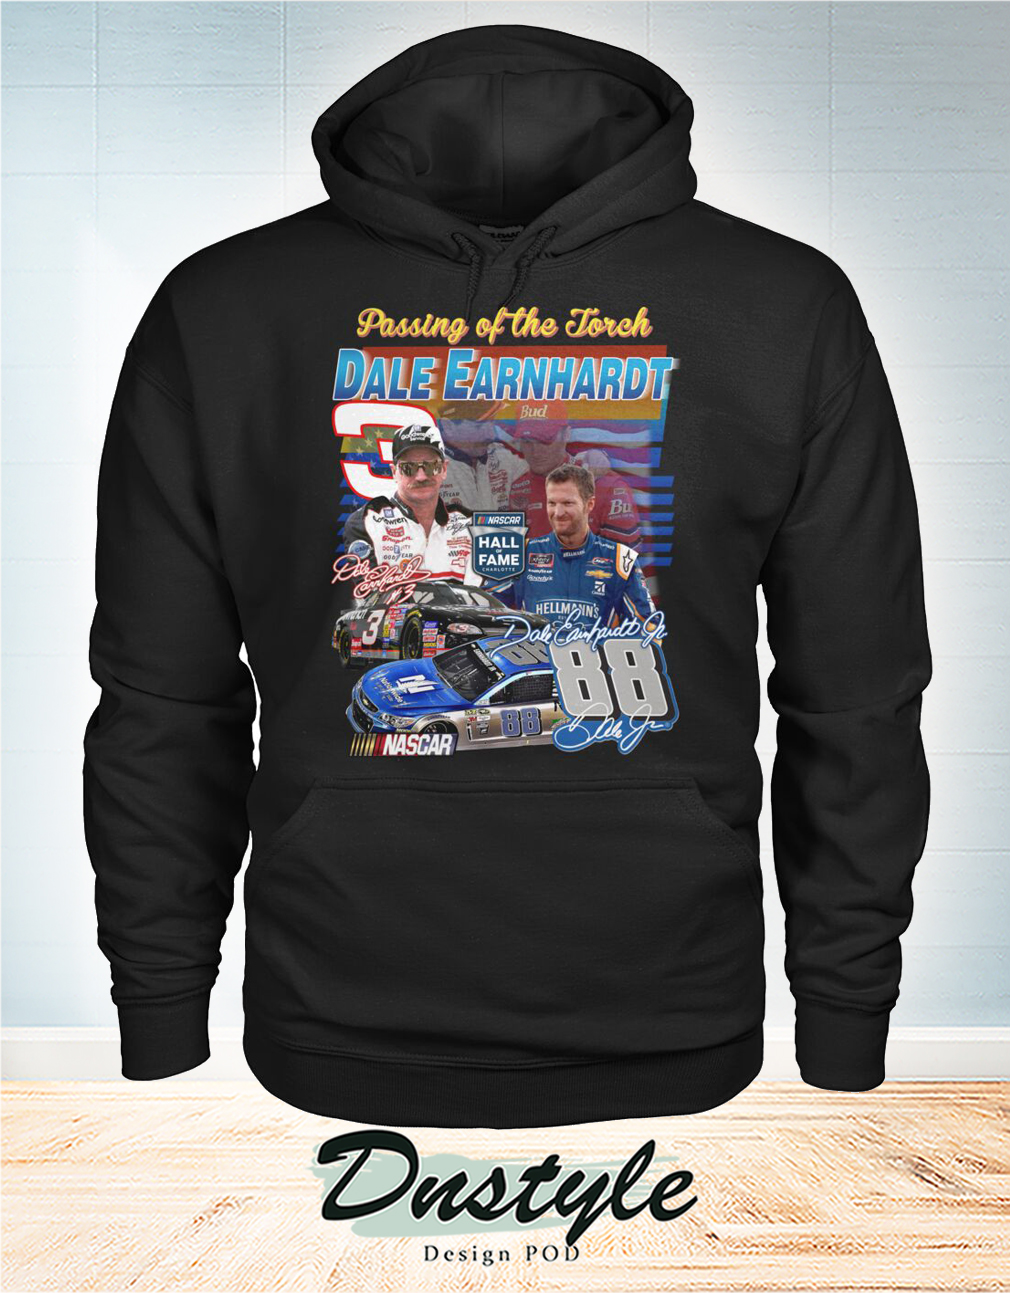 Passing of the forch Dale Earnhardt signature hoodie